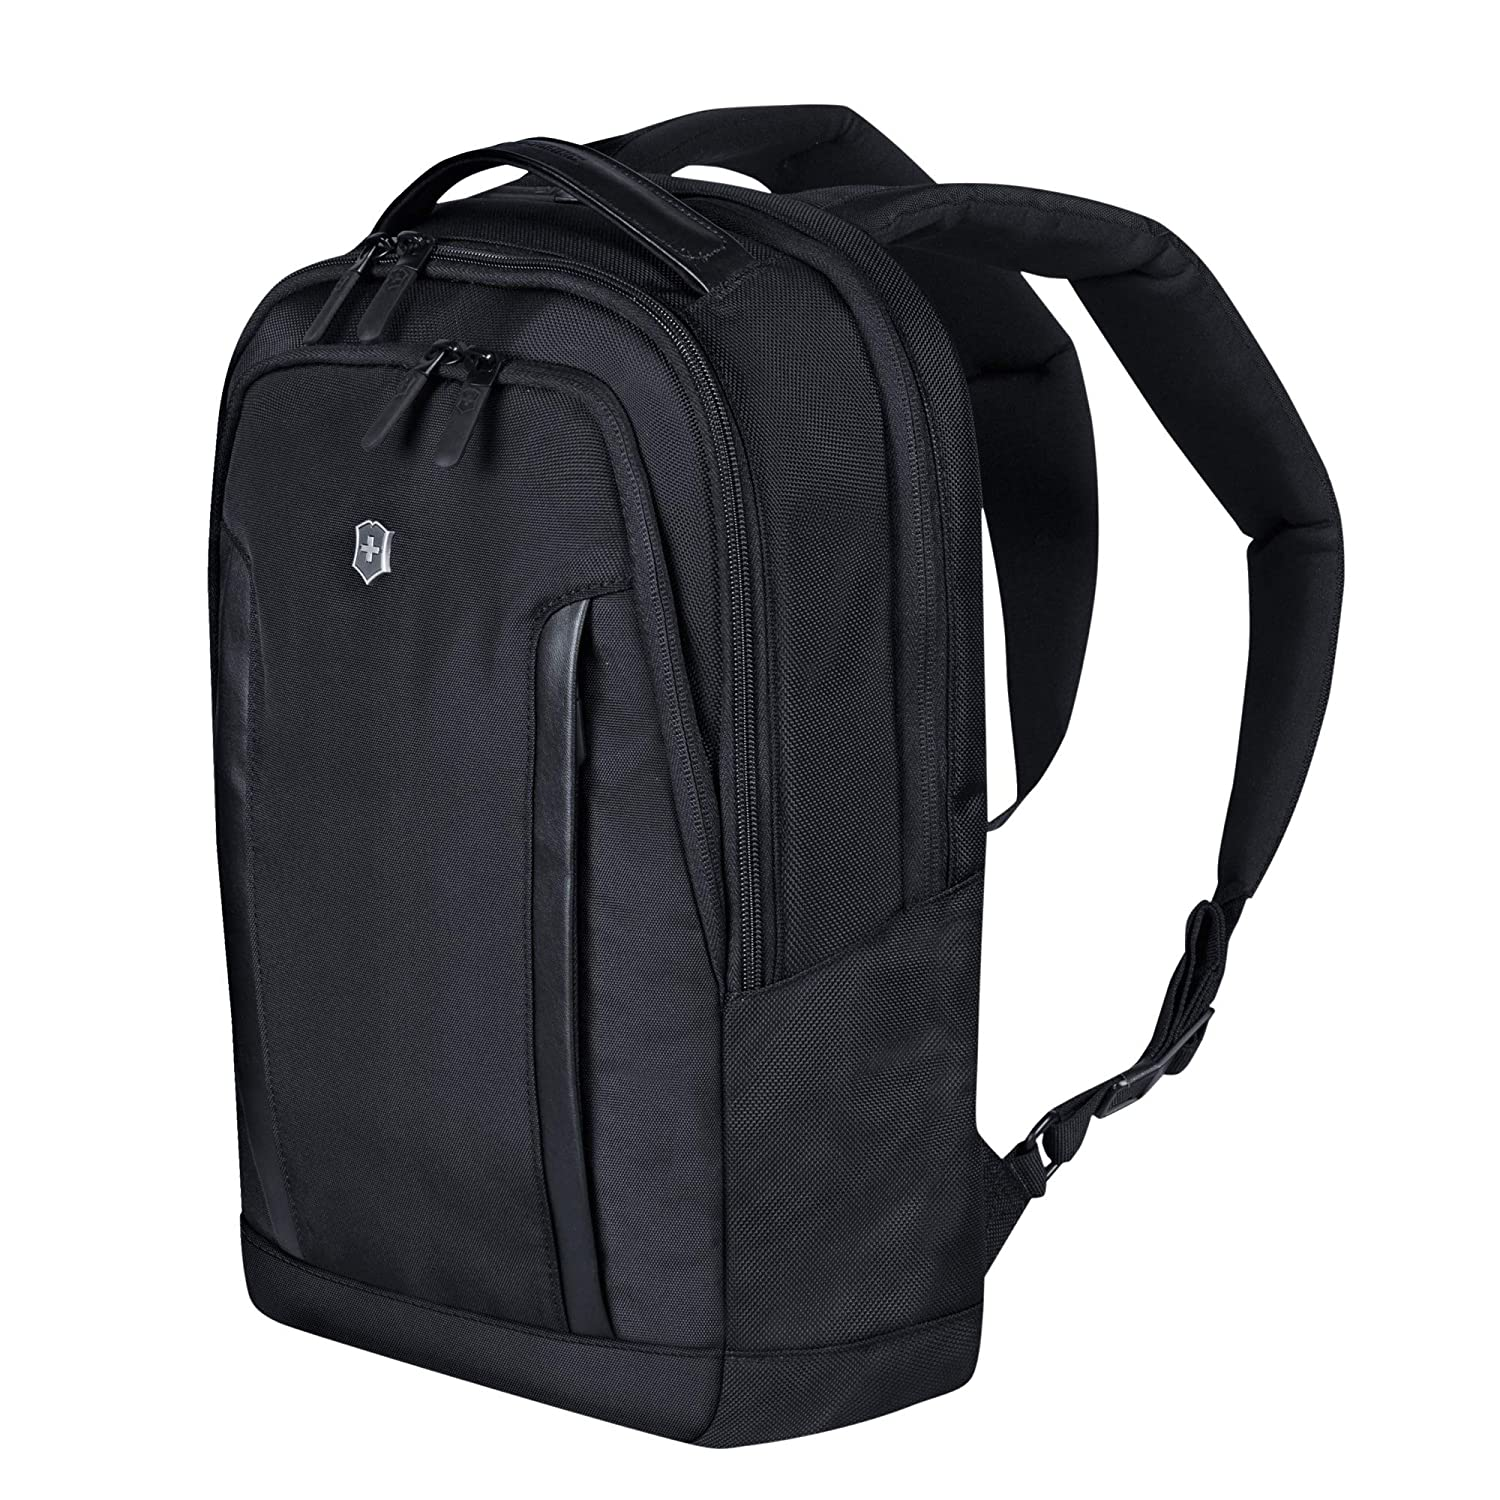 Victorinox Altmont Professional Compact Laptop Backpack, Black, One Size